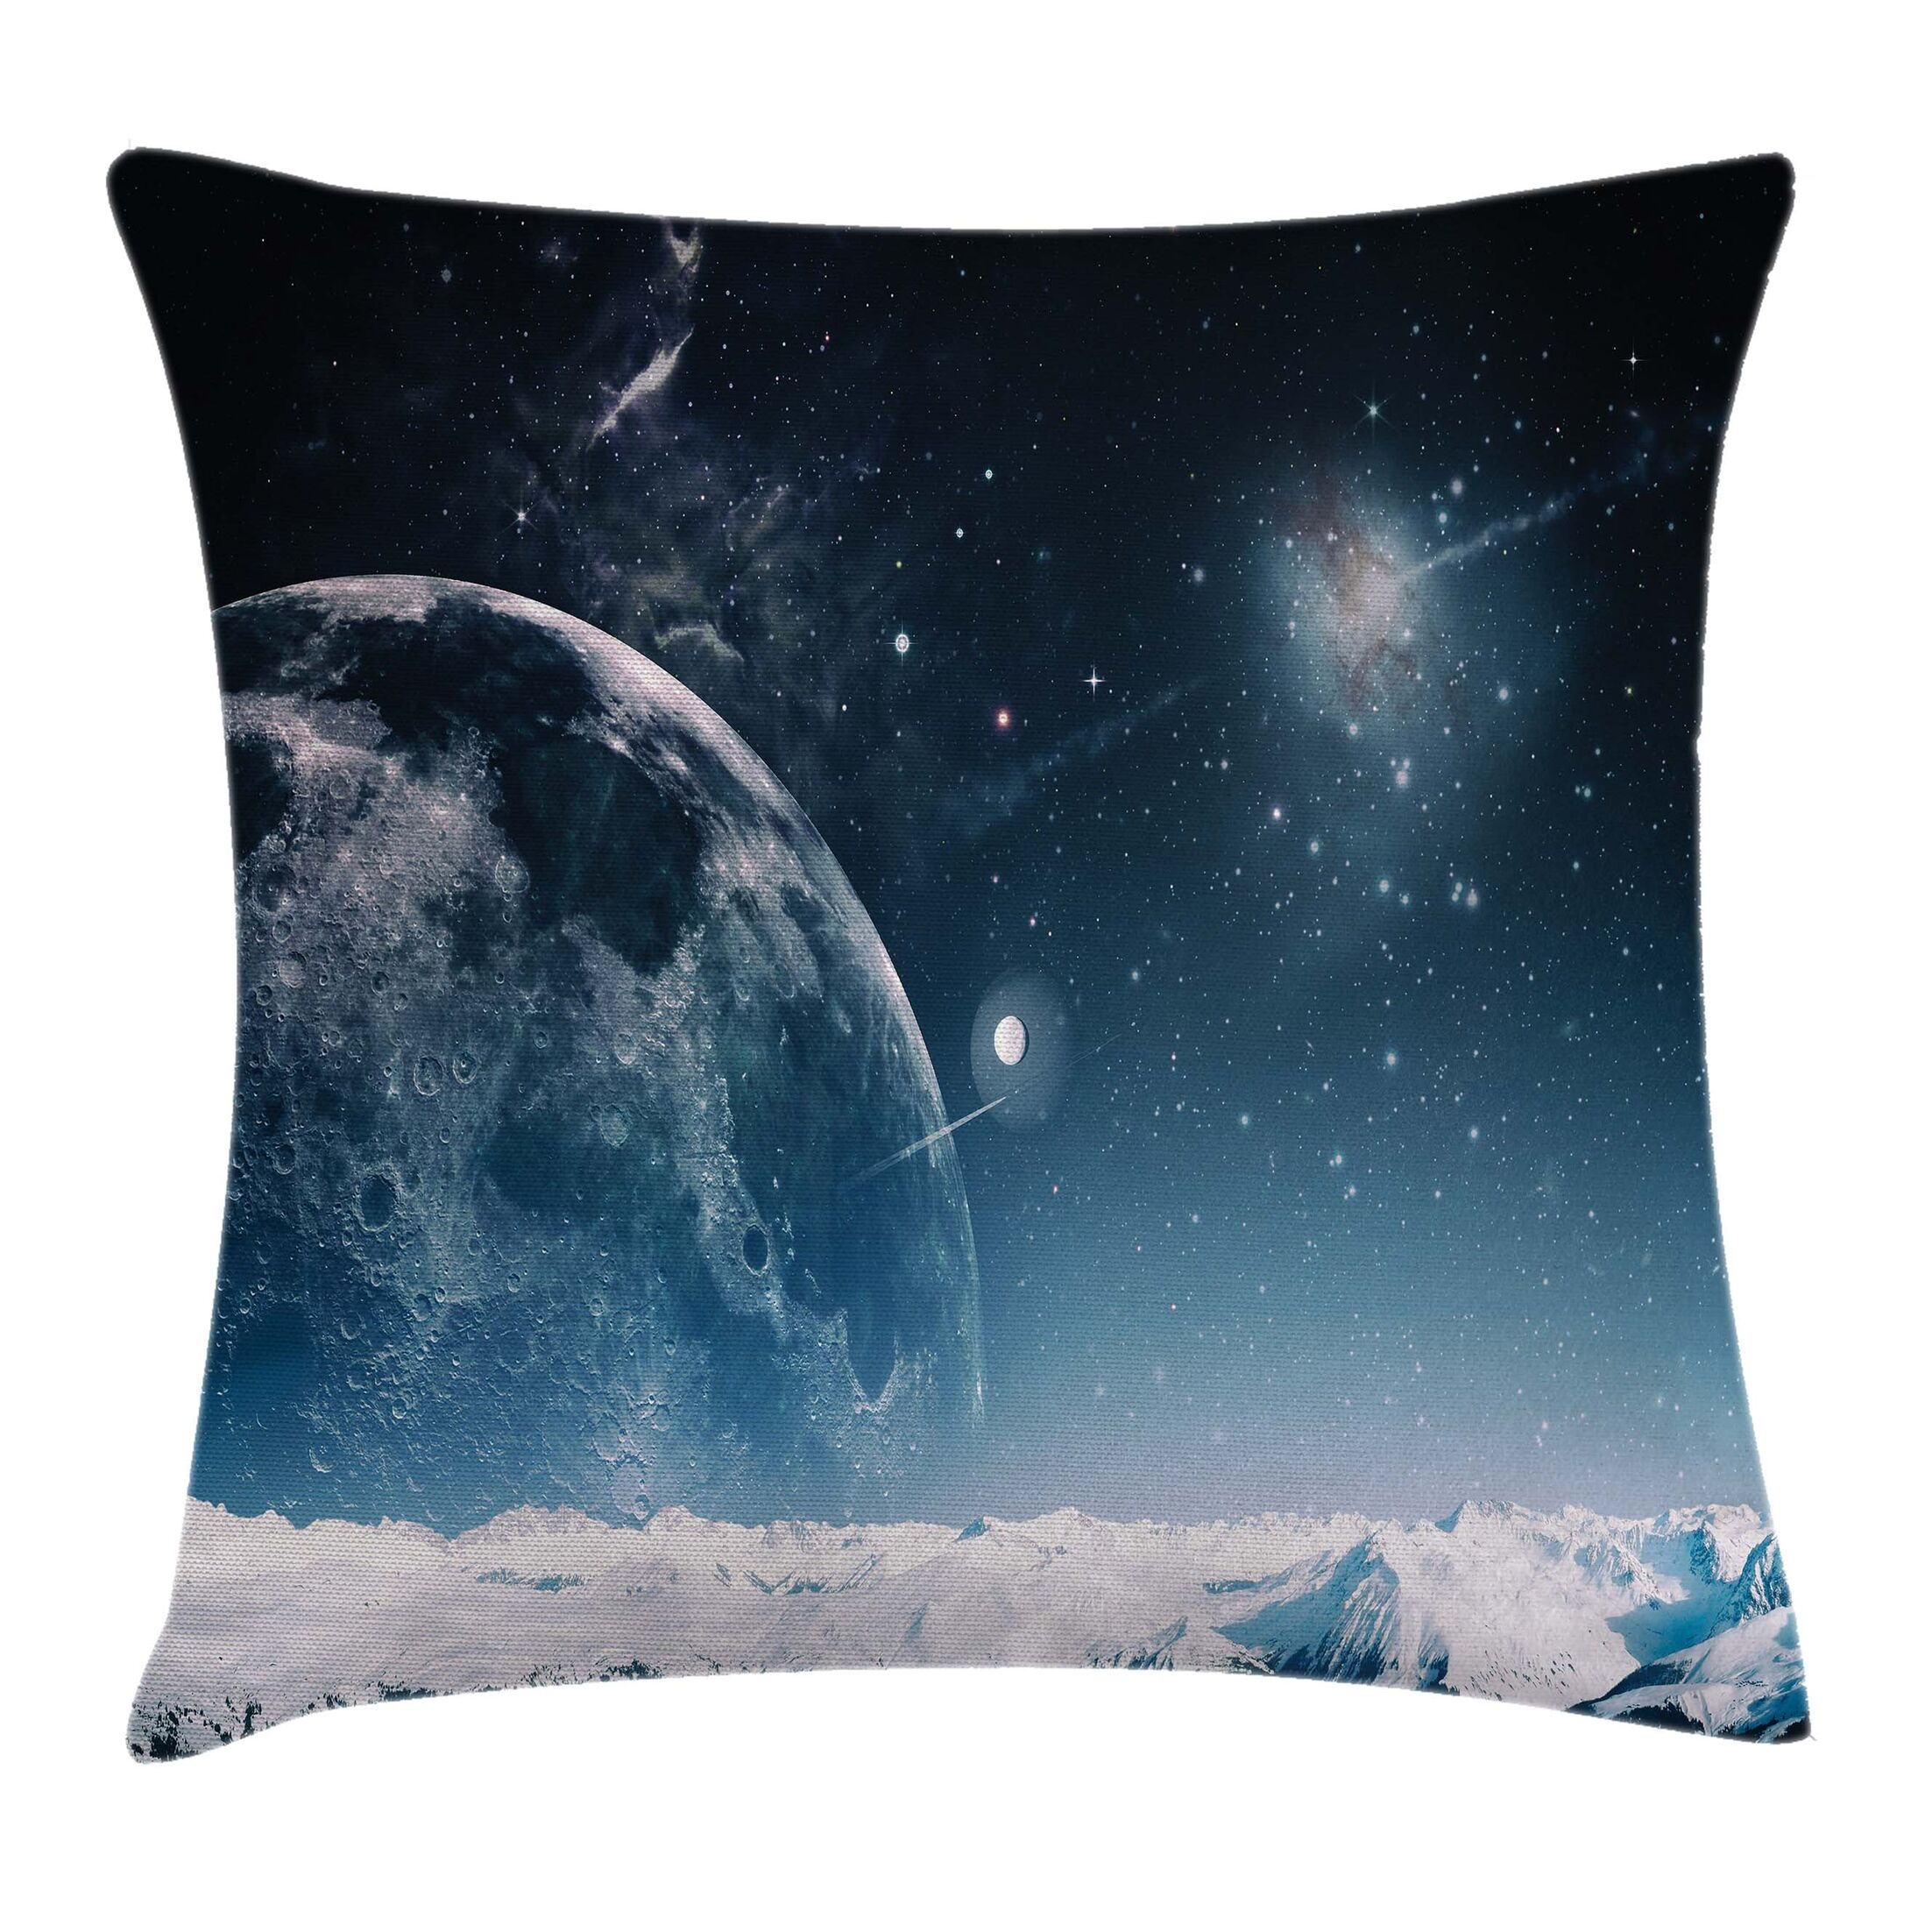 Universe Another World Infinity Pillow Cover Size: 20